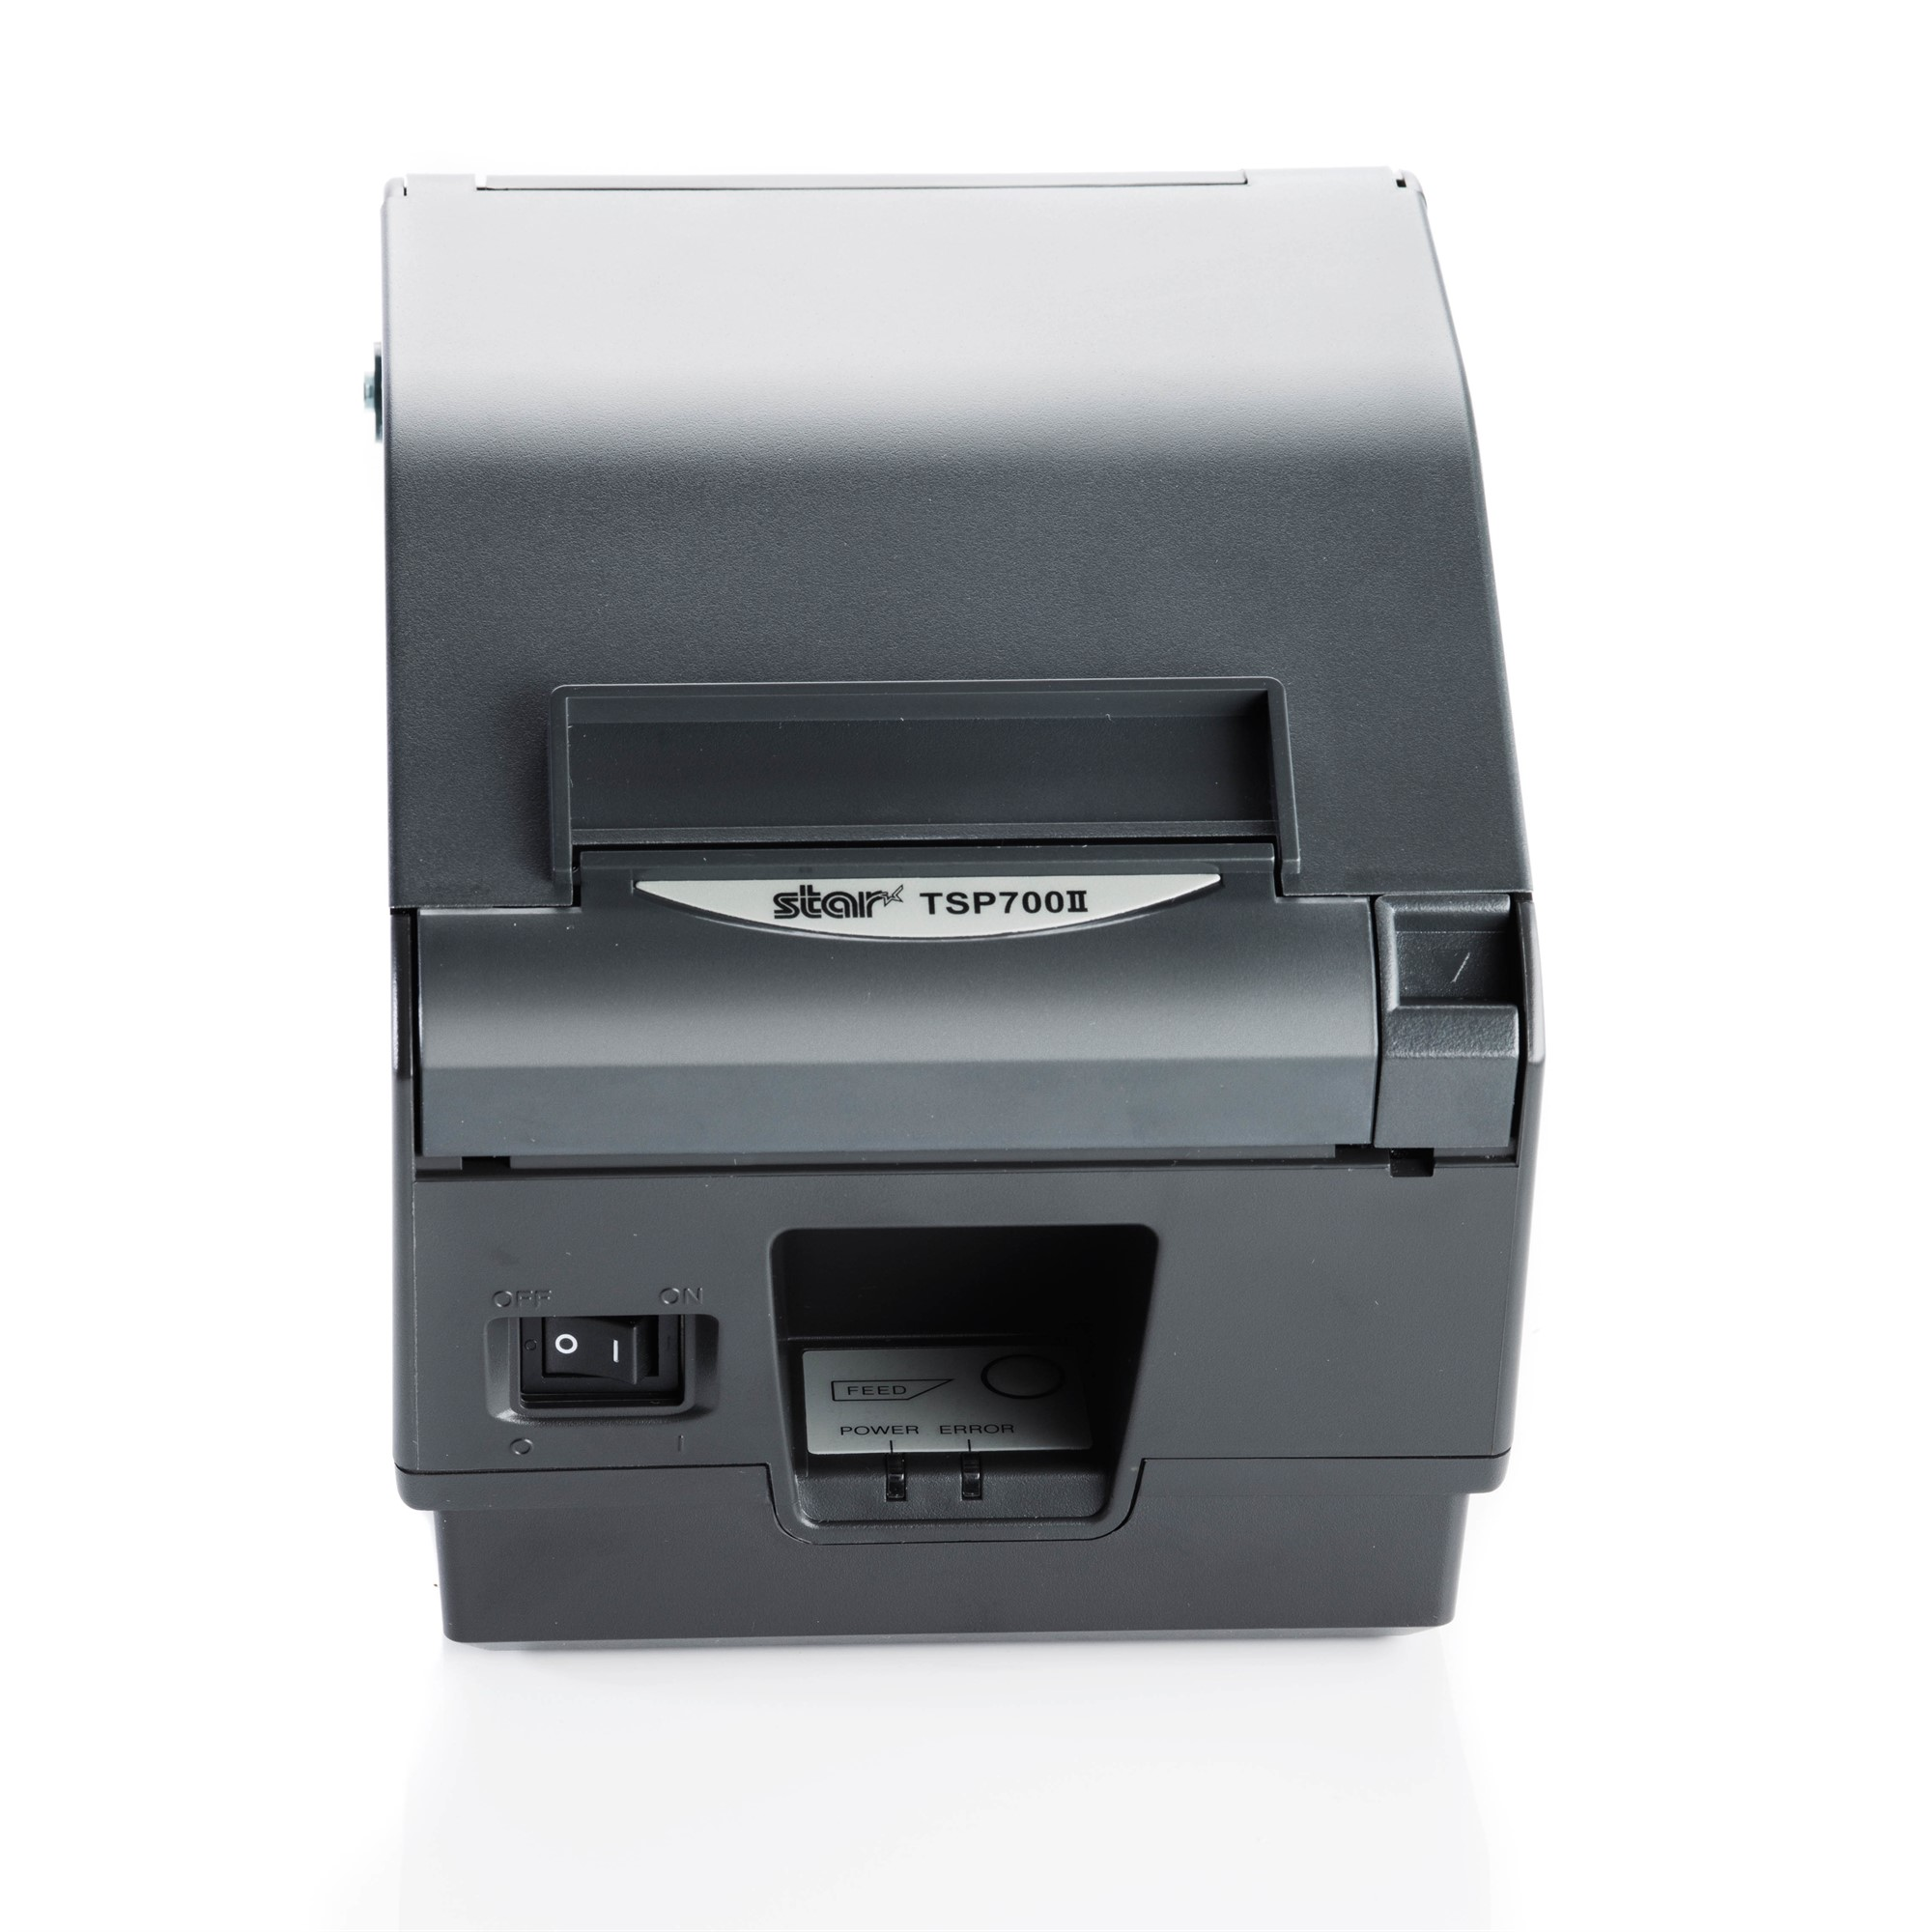 STAR MICRONICS 39442410 THERMAL, 80MM WIDE PAPER, 24VDC (REQUIRES PS60 PSU), CUTTER, NO INTERFACE, CHARCOAL GREY CASE